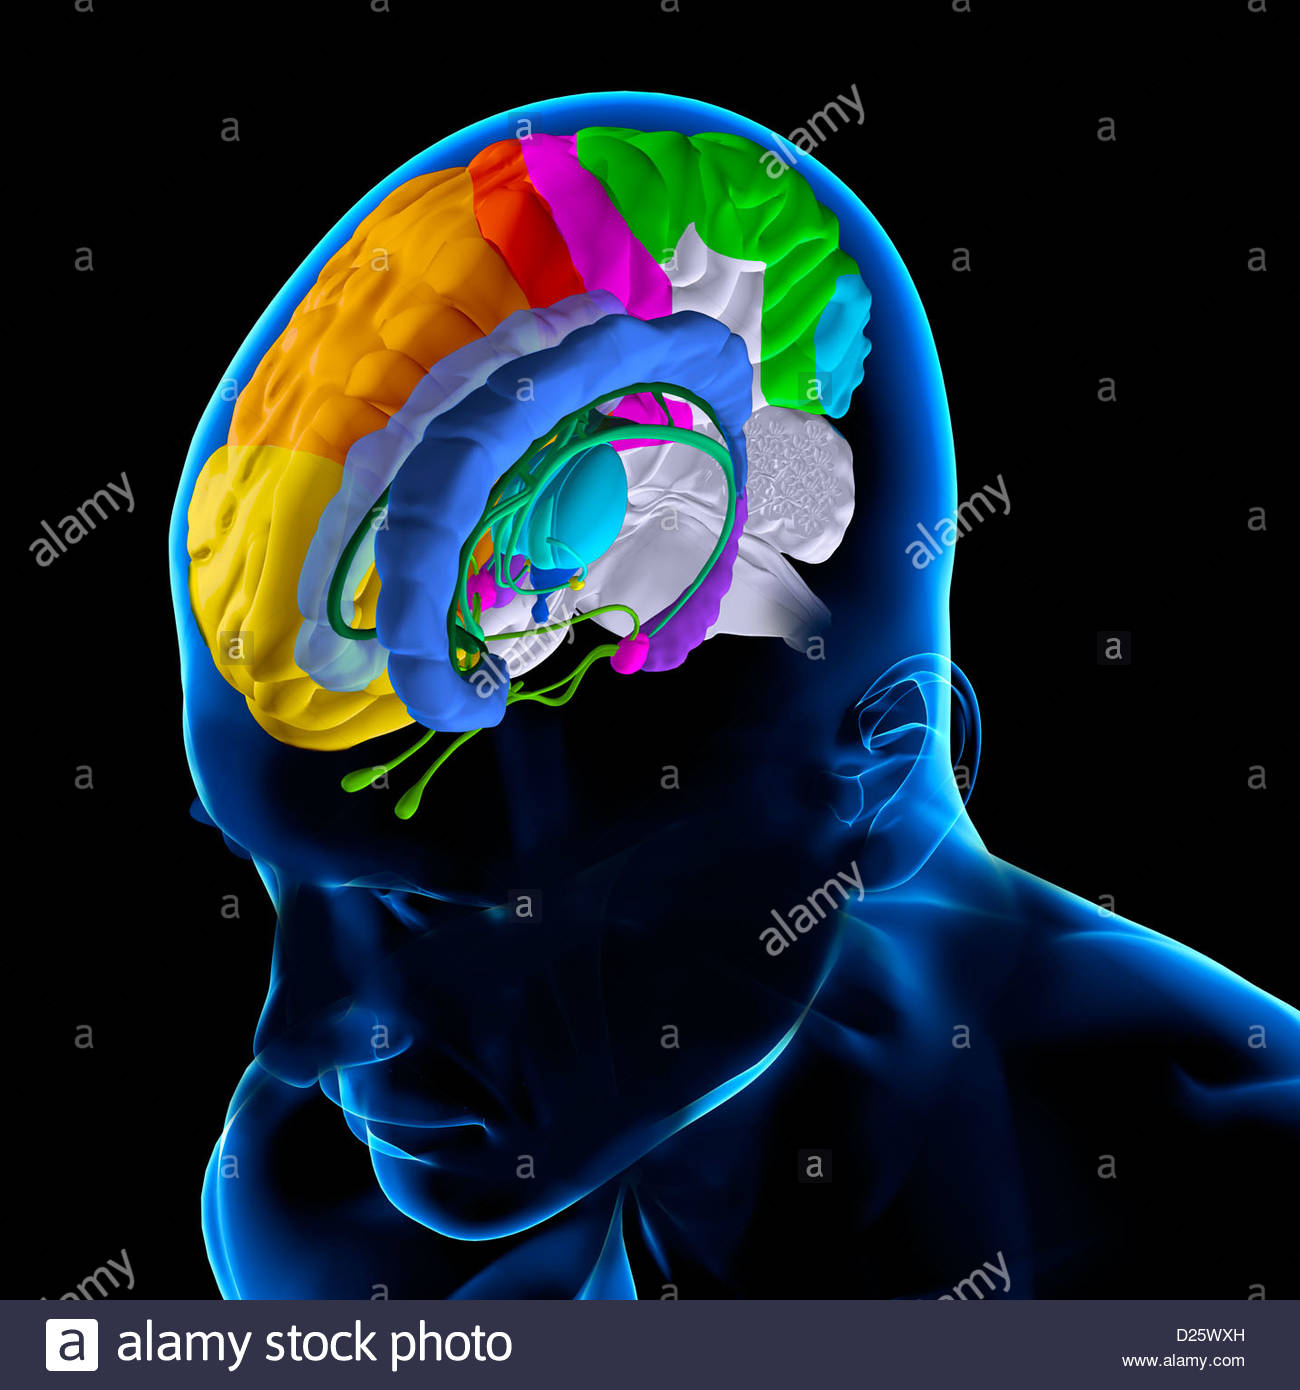 ANATOMY OF THE BRAIN Stock Photo: 52990521 - Alamy